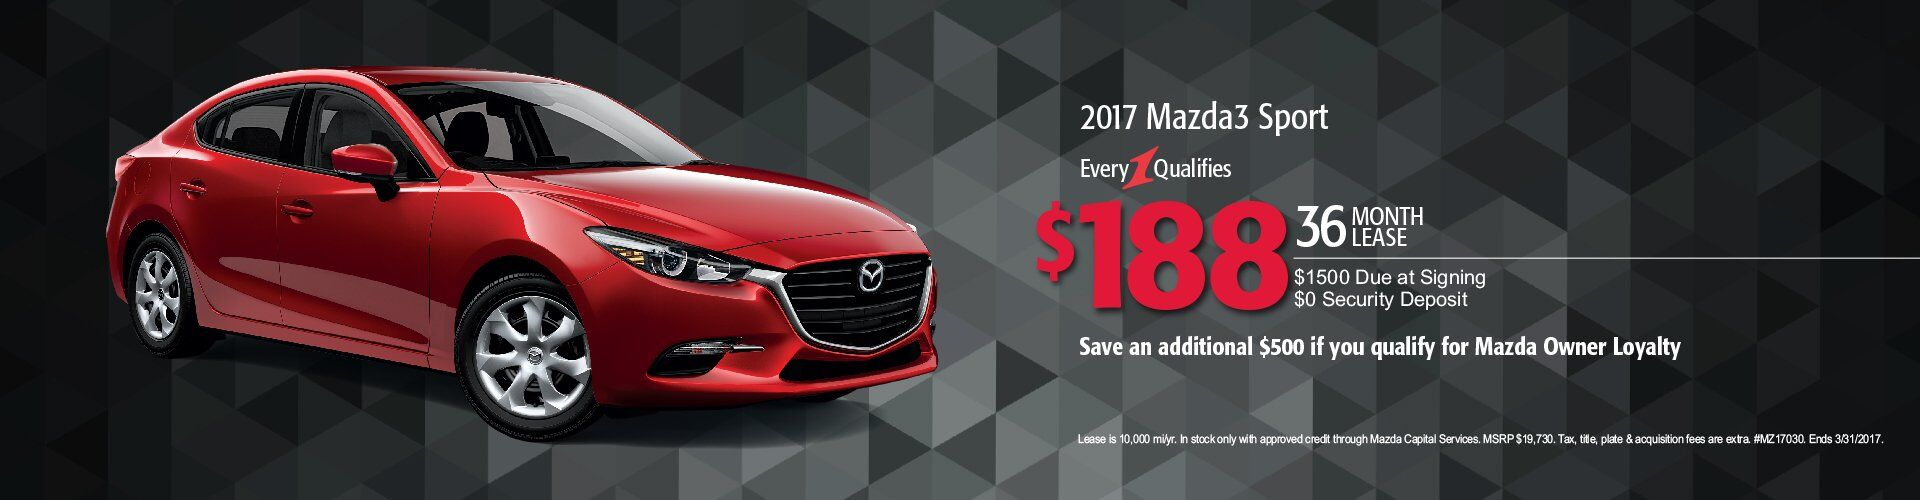 2017 Mazda3 Sport Lease Monroeville PA